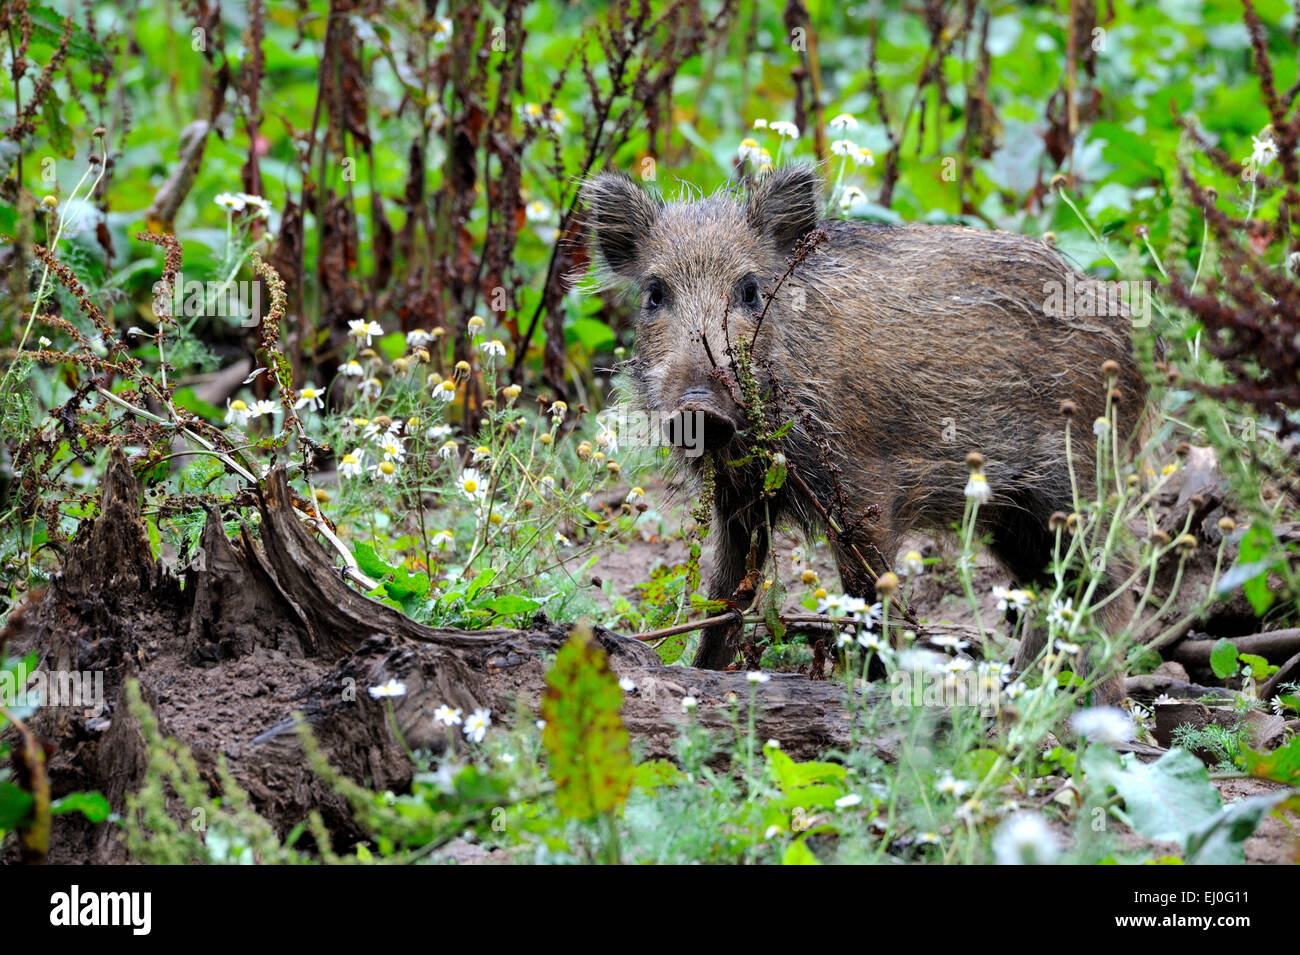 Wild boar, animal, Sus scrofa scrofa, sow, wild boars, black game, pigs, pig, vertebrates, mammals, real pigs, pigs, - Stock Image